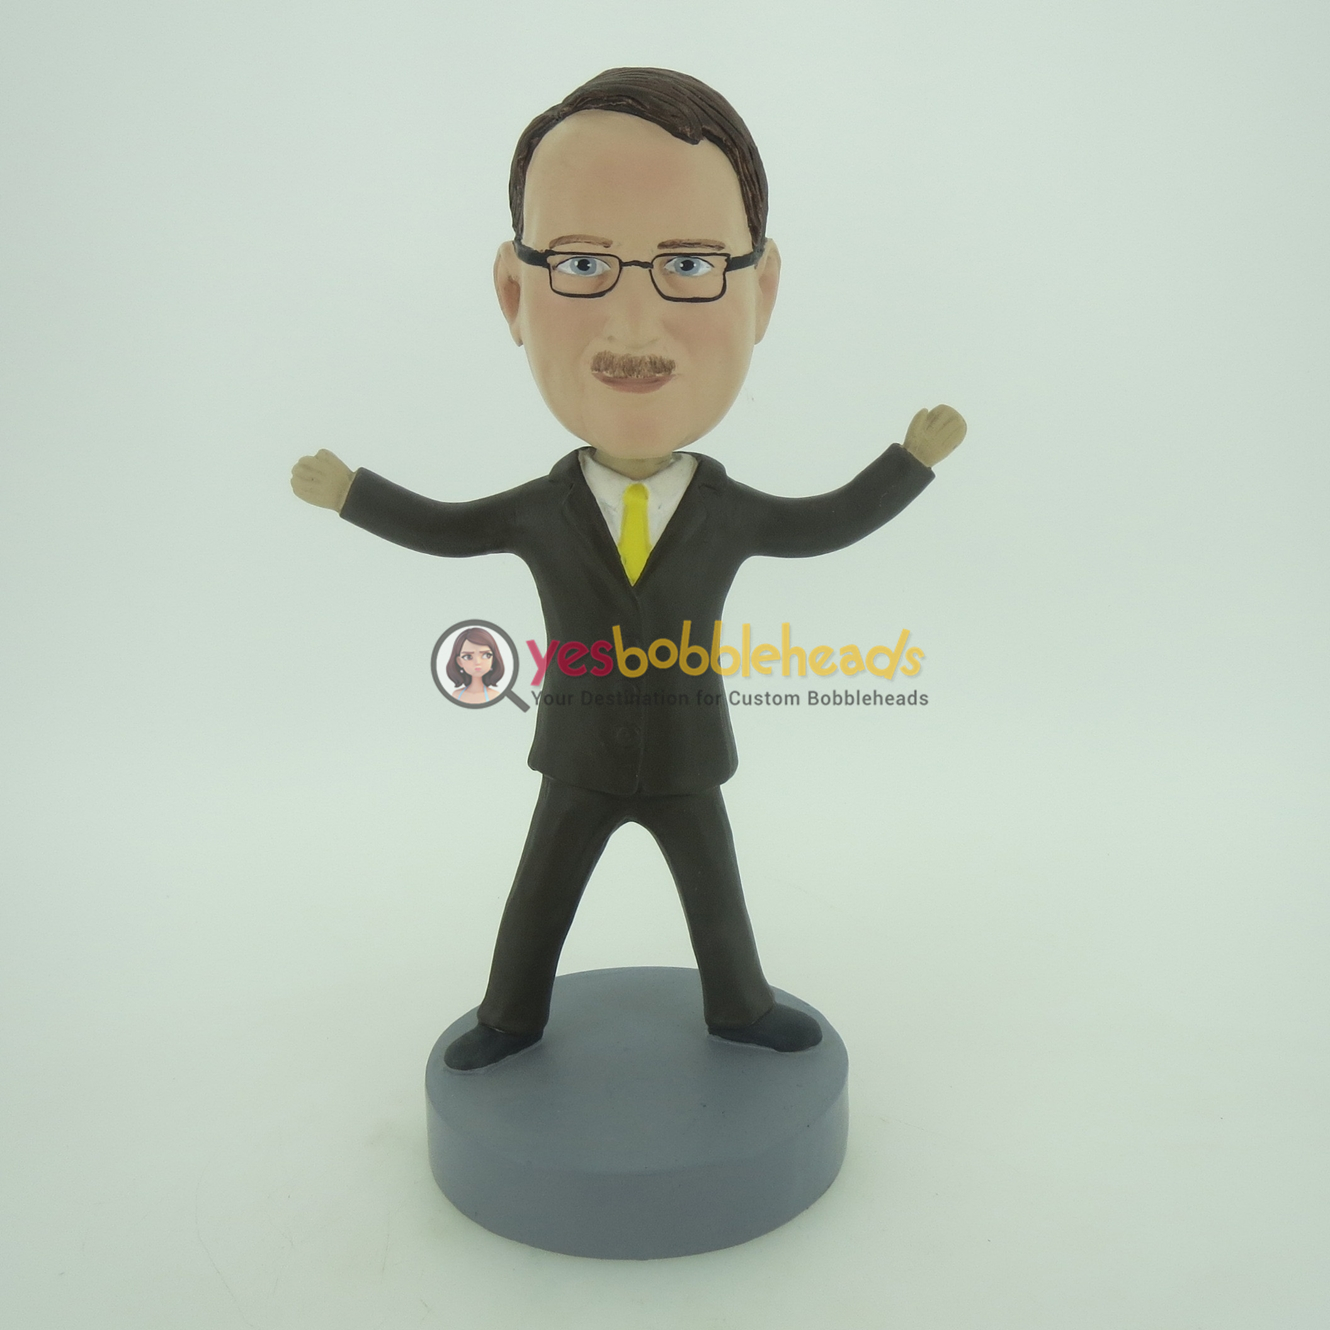 Picture of Custom Bobblehead Doll: Business Man With Yellow Tie Standing Out